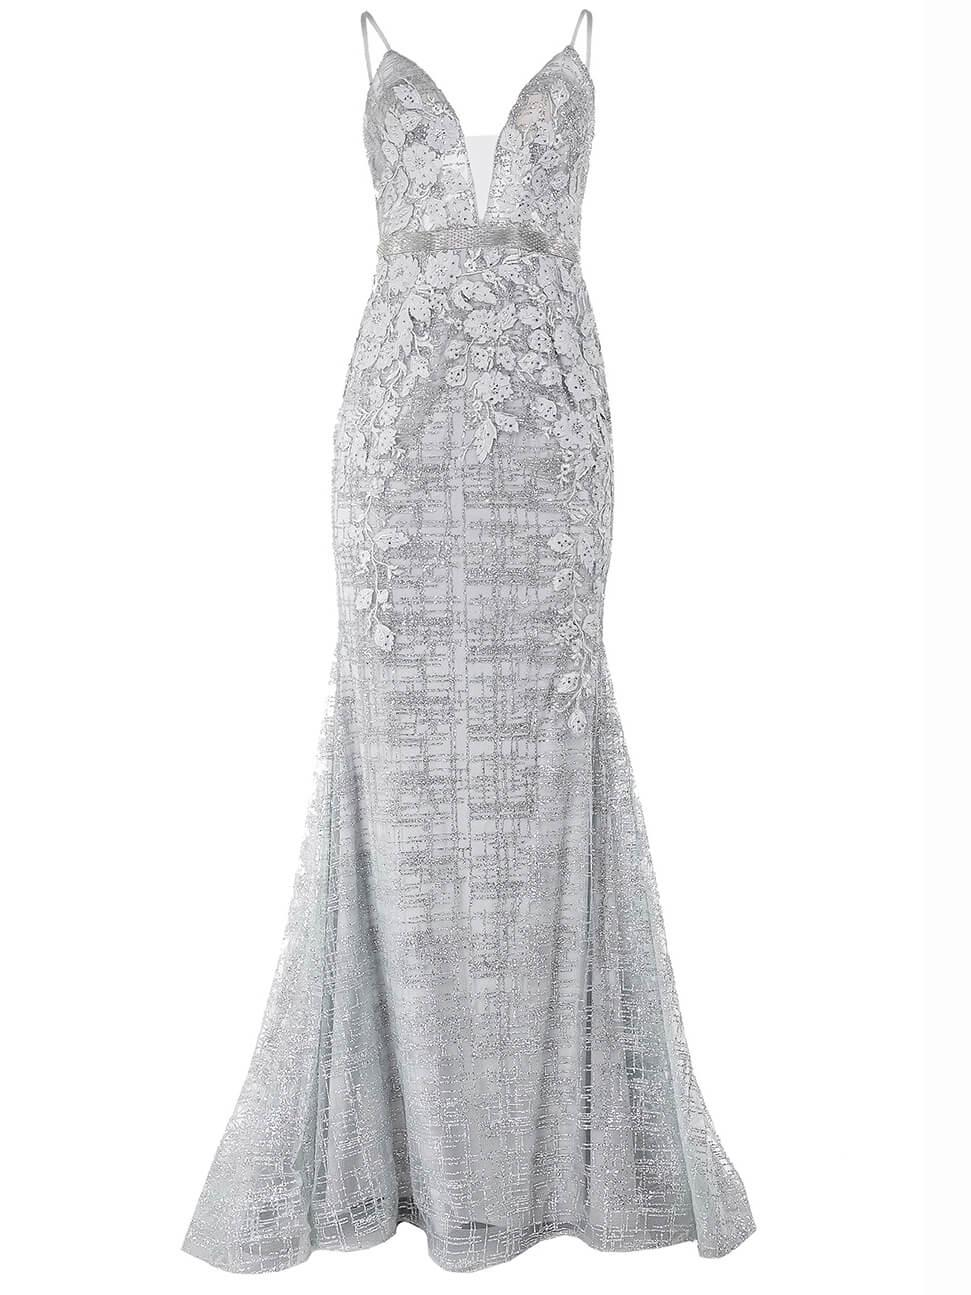 Sleeveless Lace Gown Item # 62517-S20C